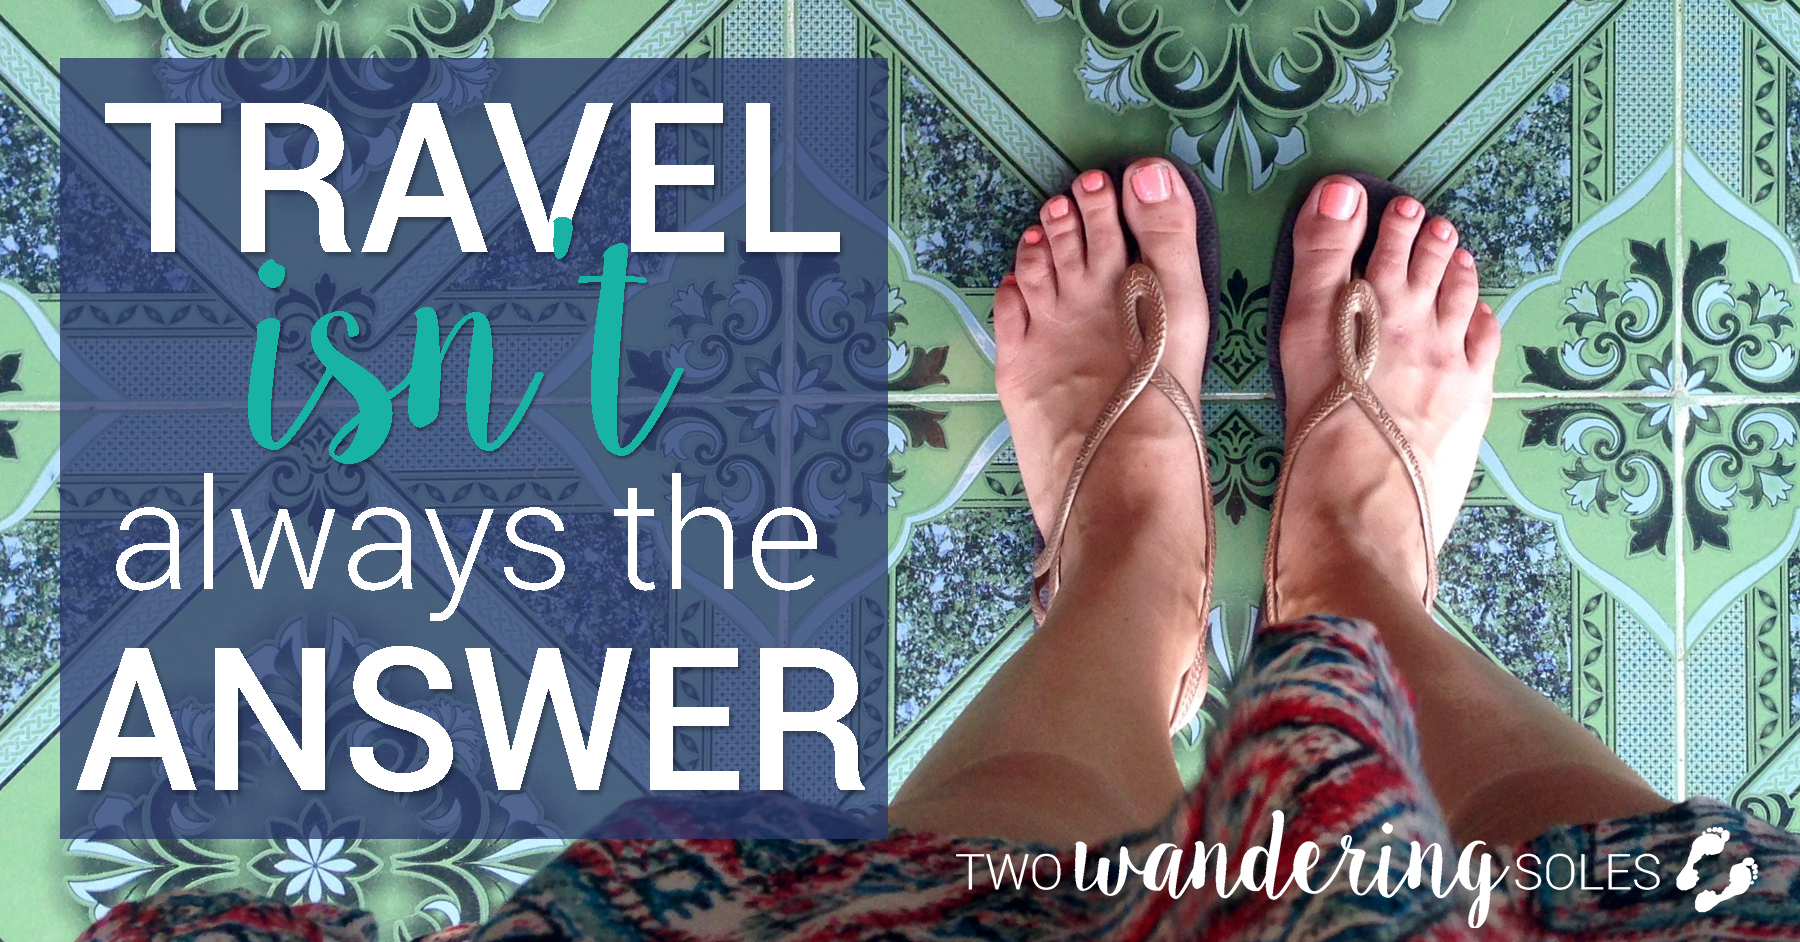 Travel isn't always the answer